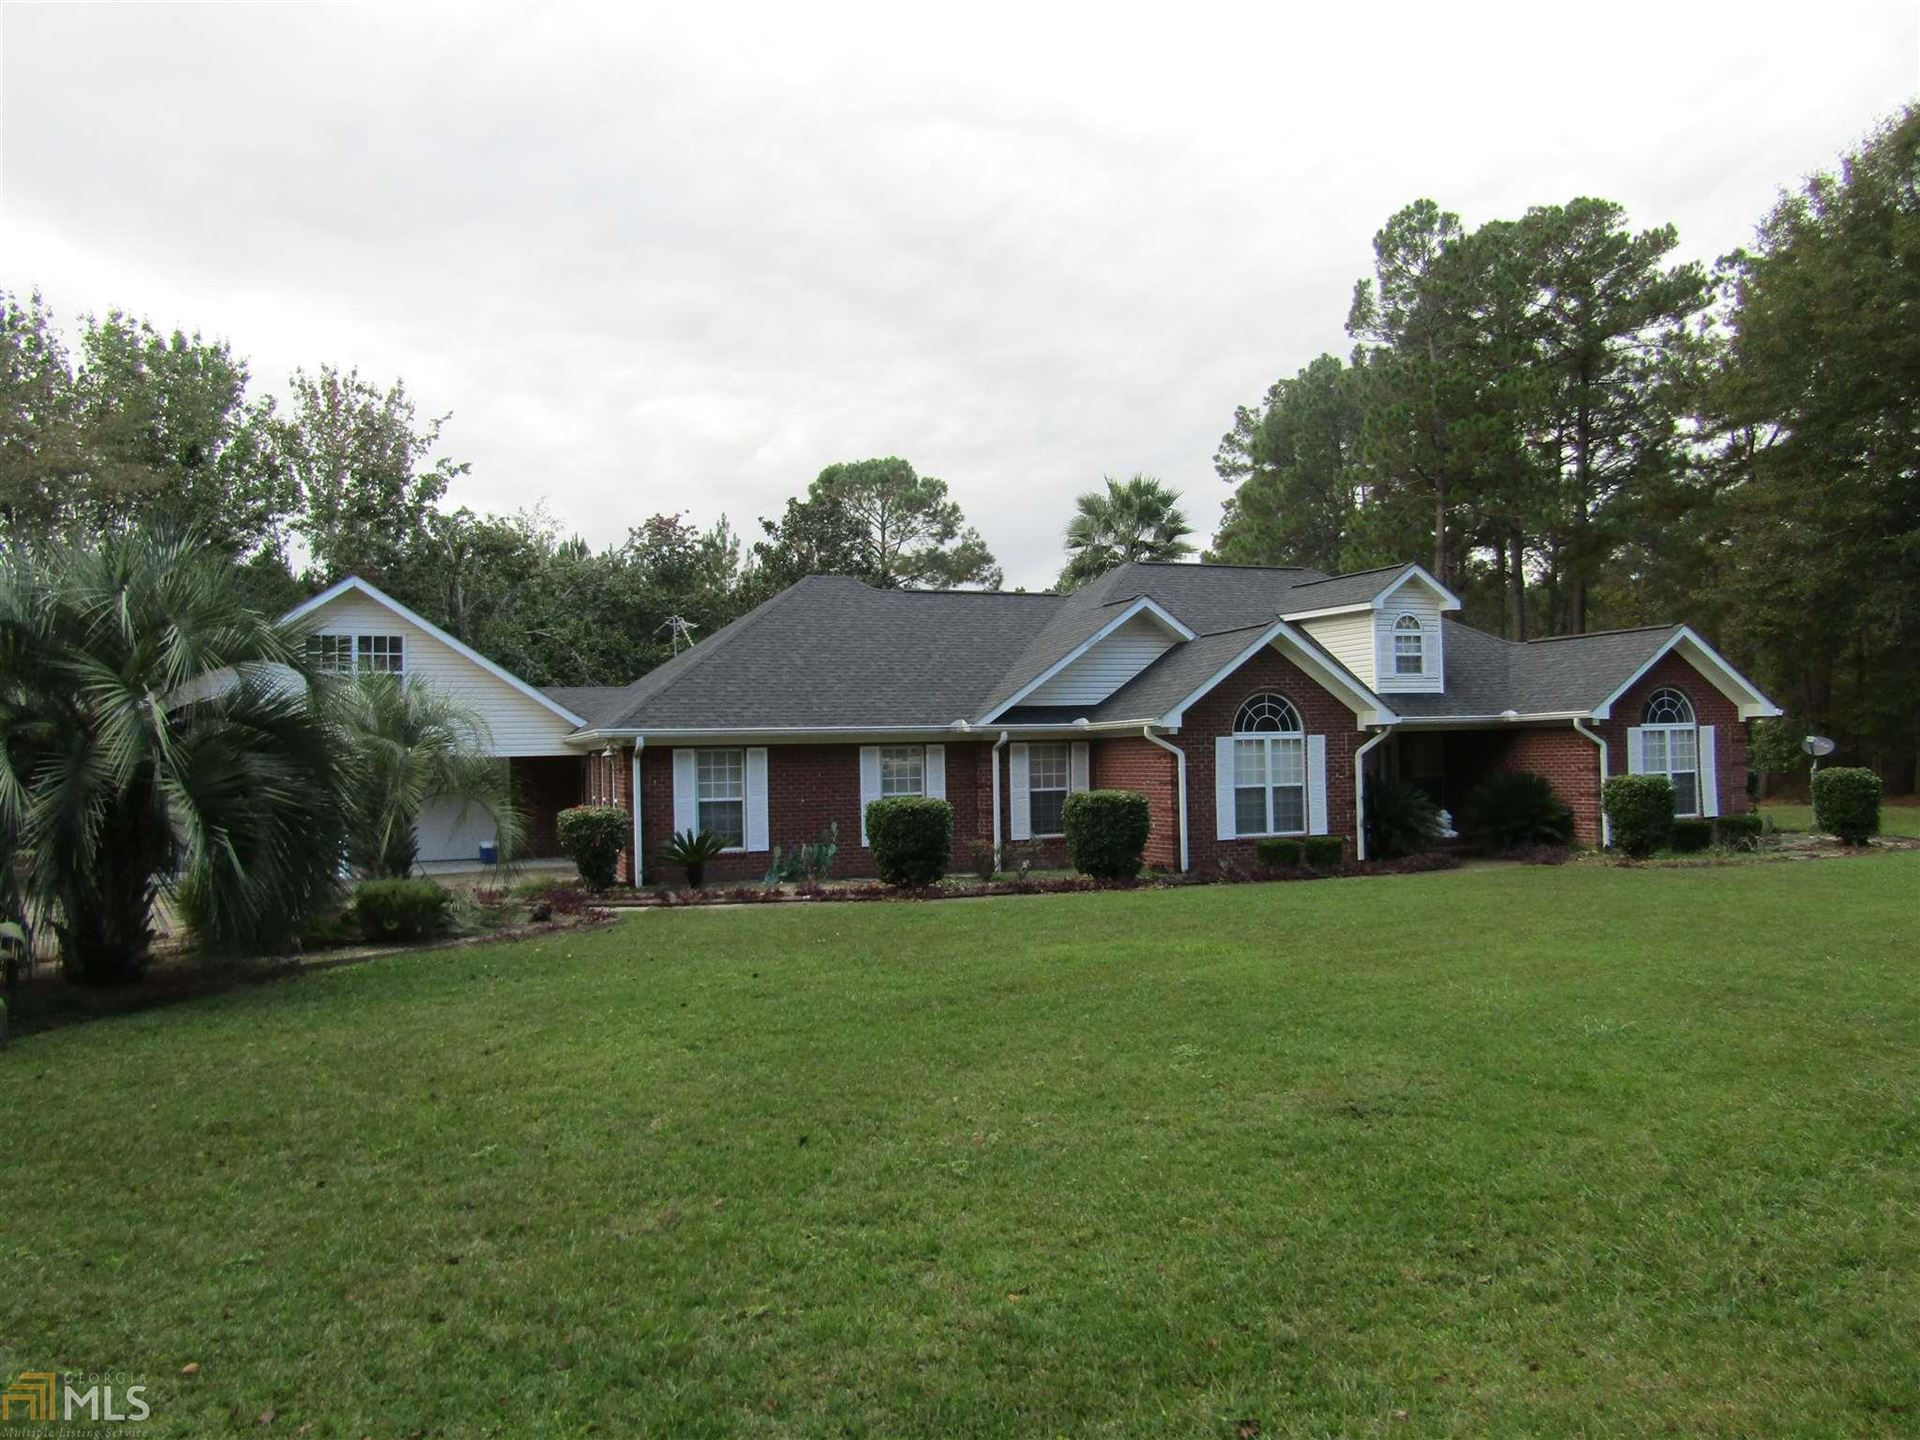 105 Ashley Ln, Statesboro, GA 30458 - MLS#: 8887534